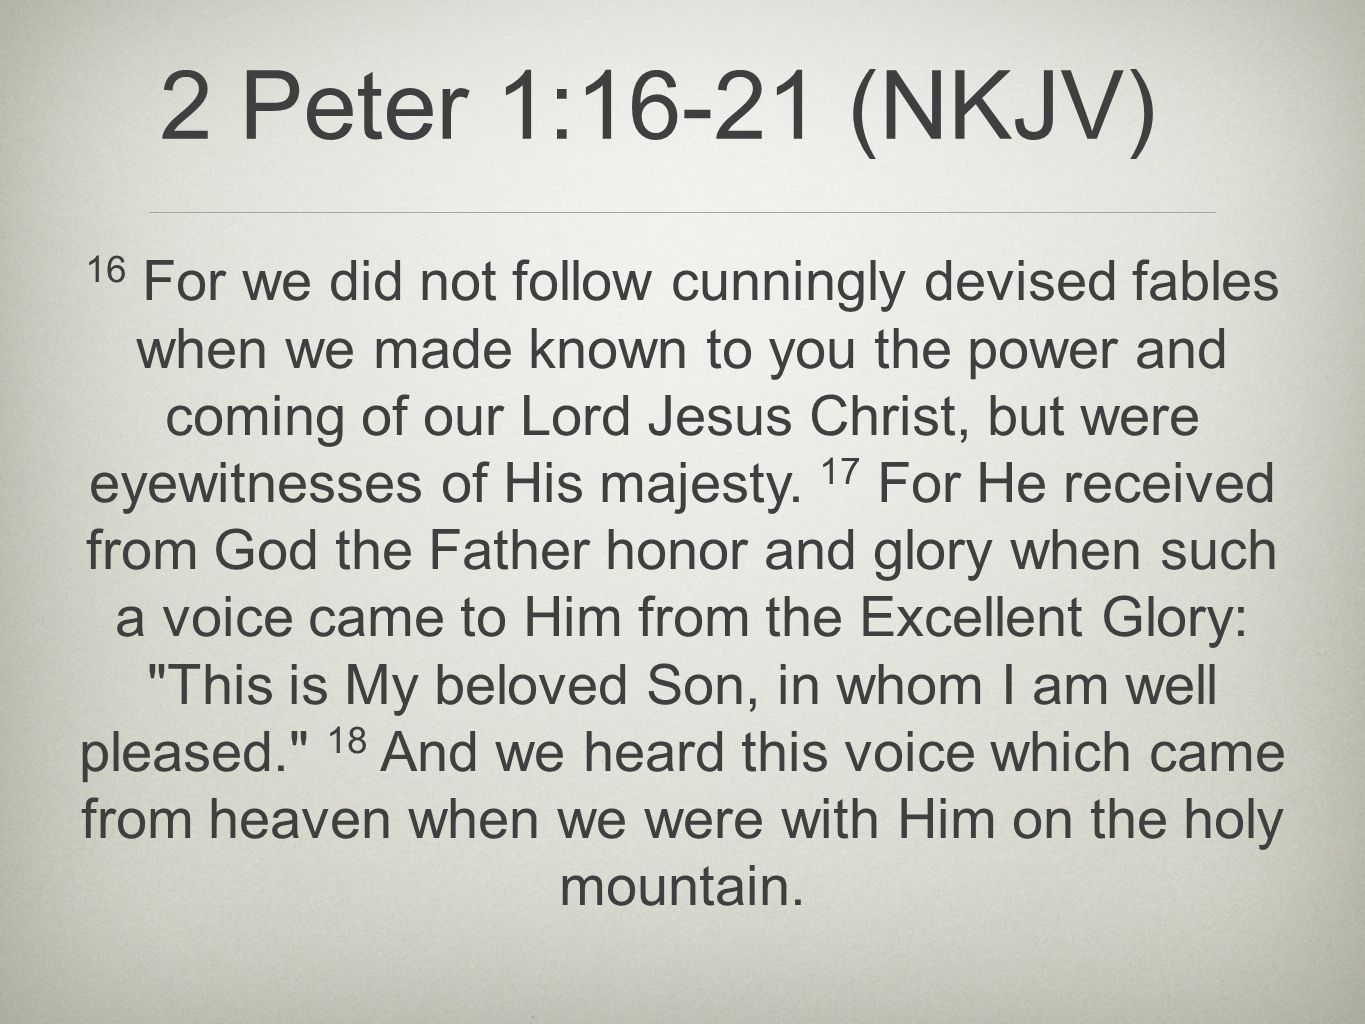 16 For we did not follow cunningly devised fables when we made known to you the power and coming of our Lord Jesus Christ, but were eyewitnesses of Hi